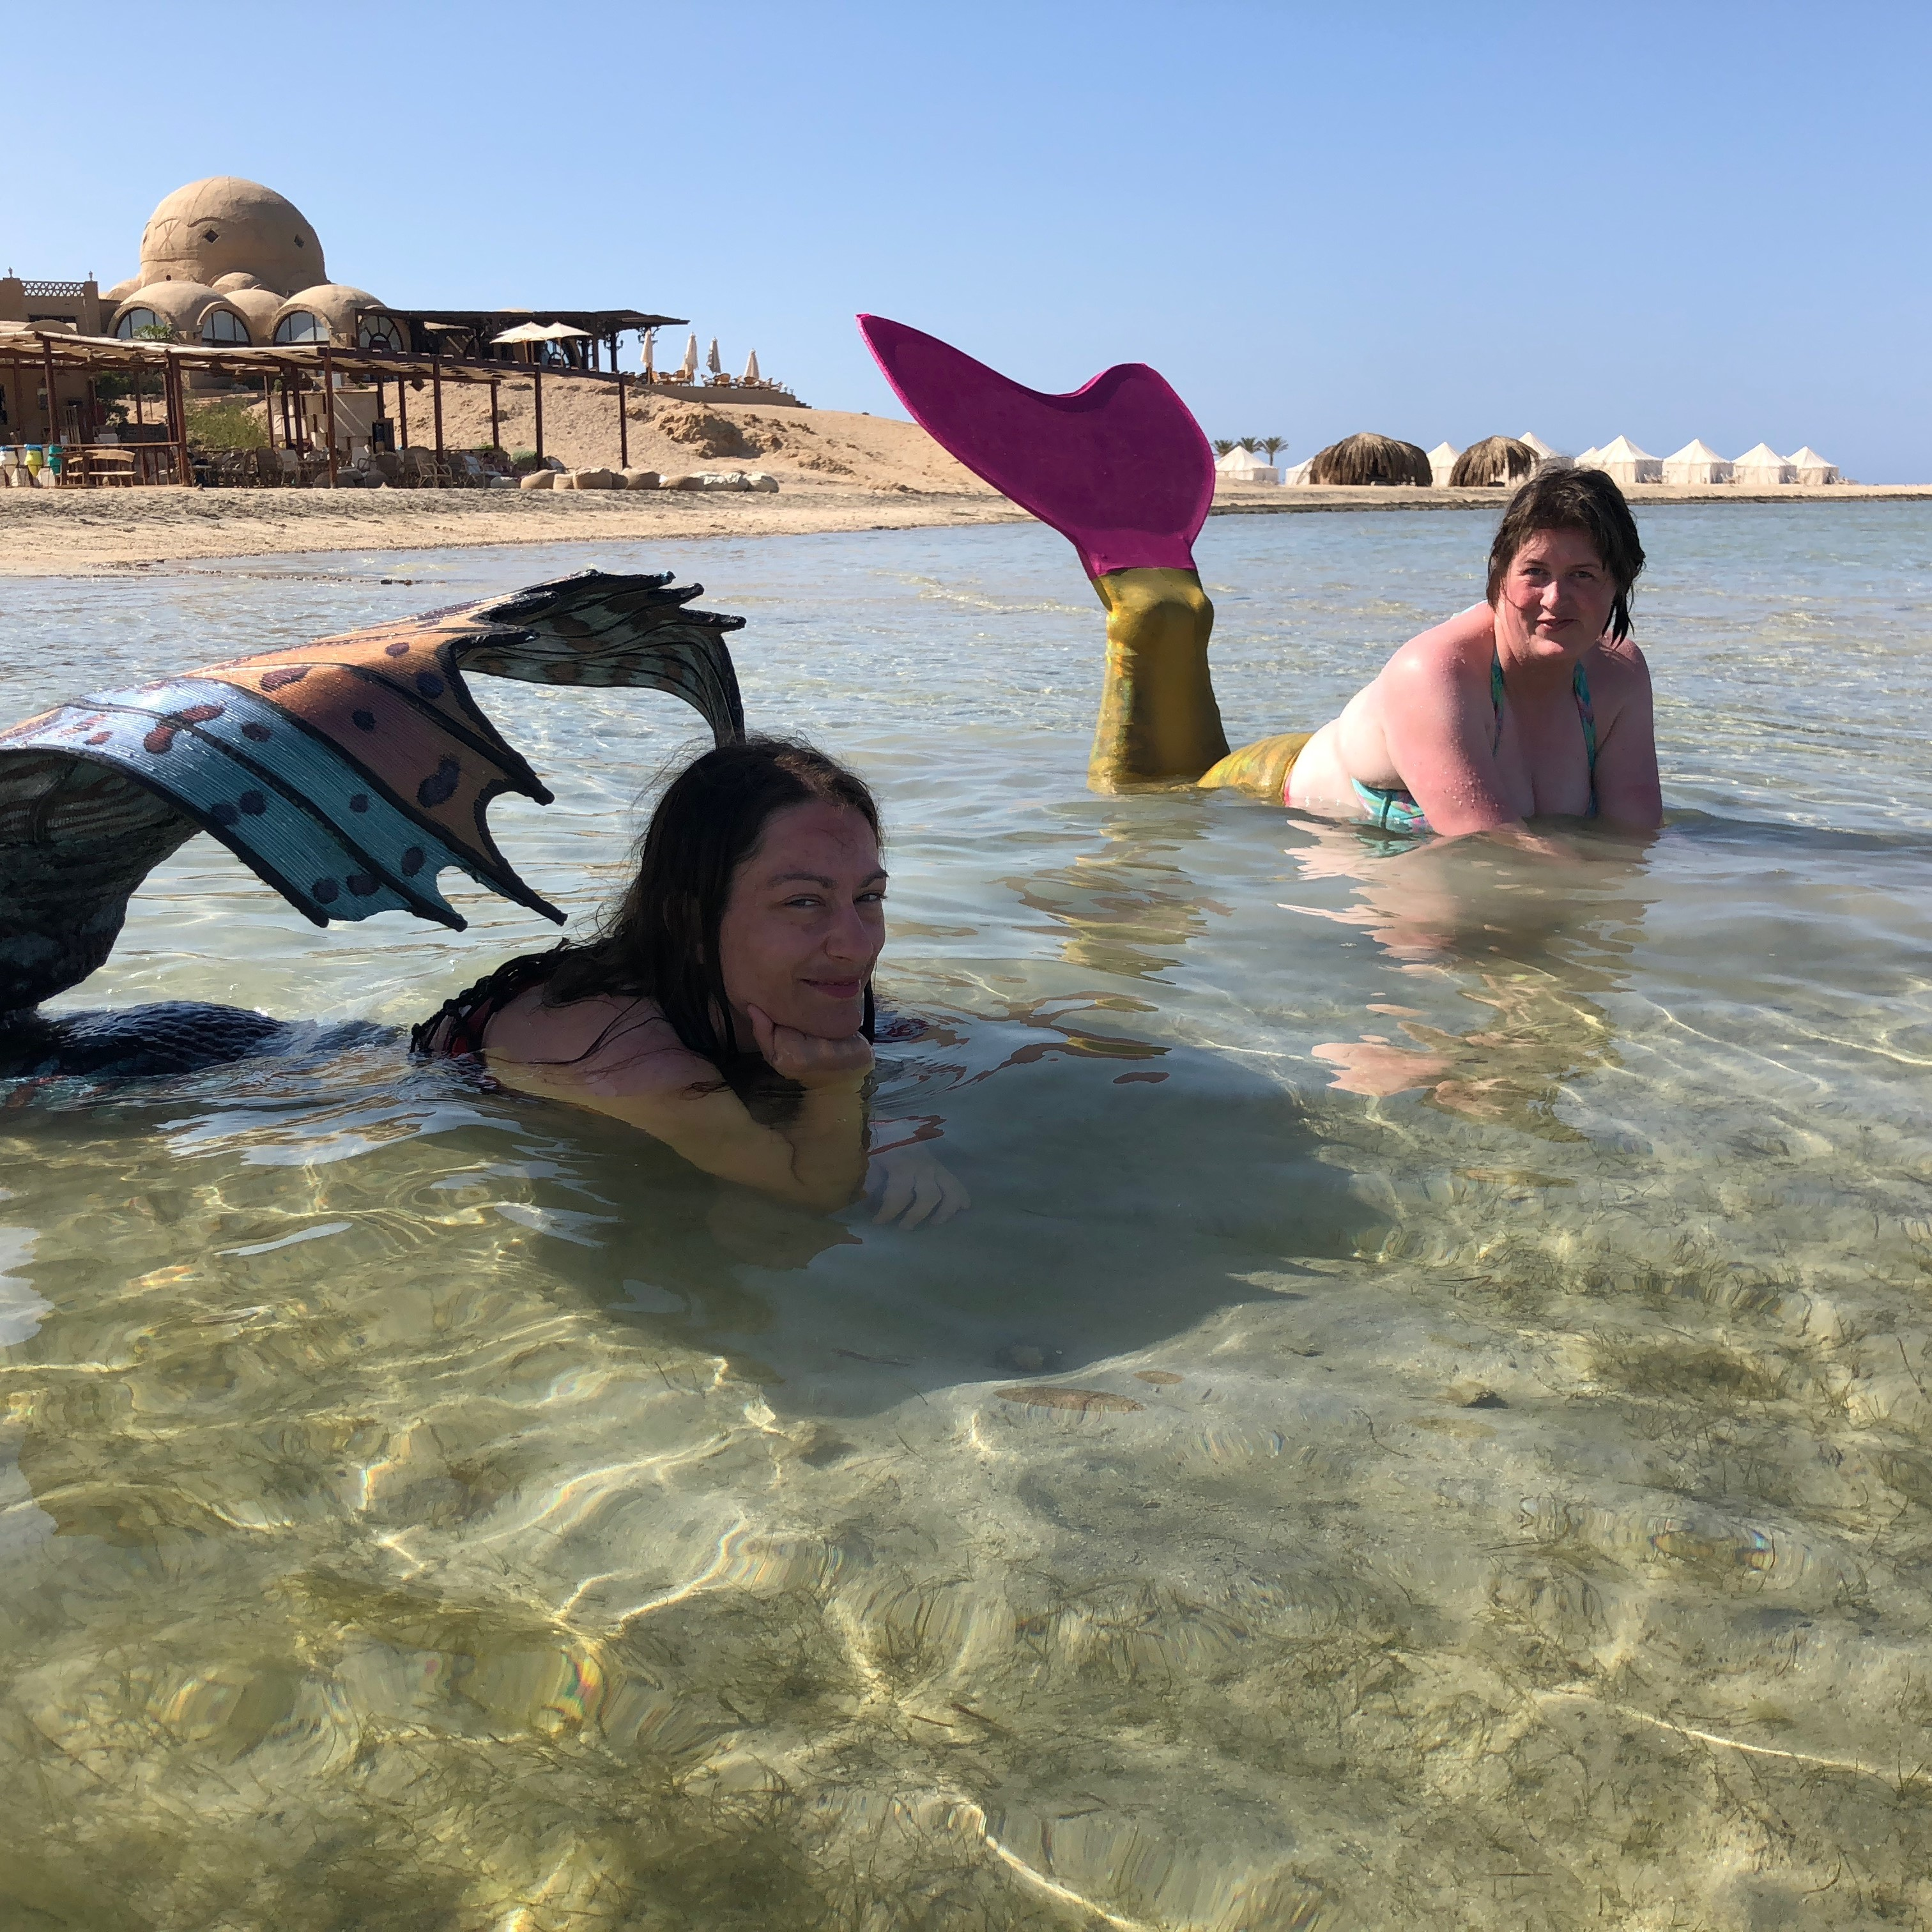 Play and pose in the shallows of the Red Sea in Egypt